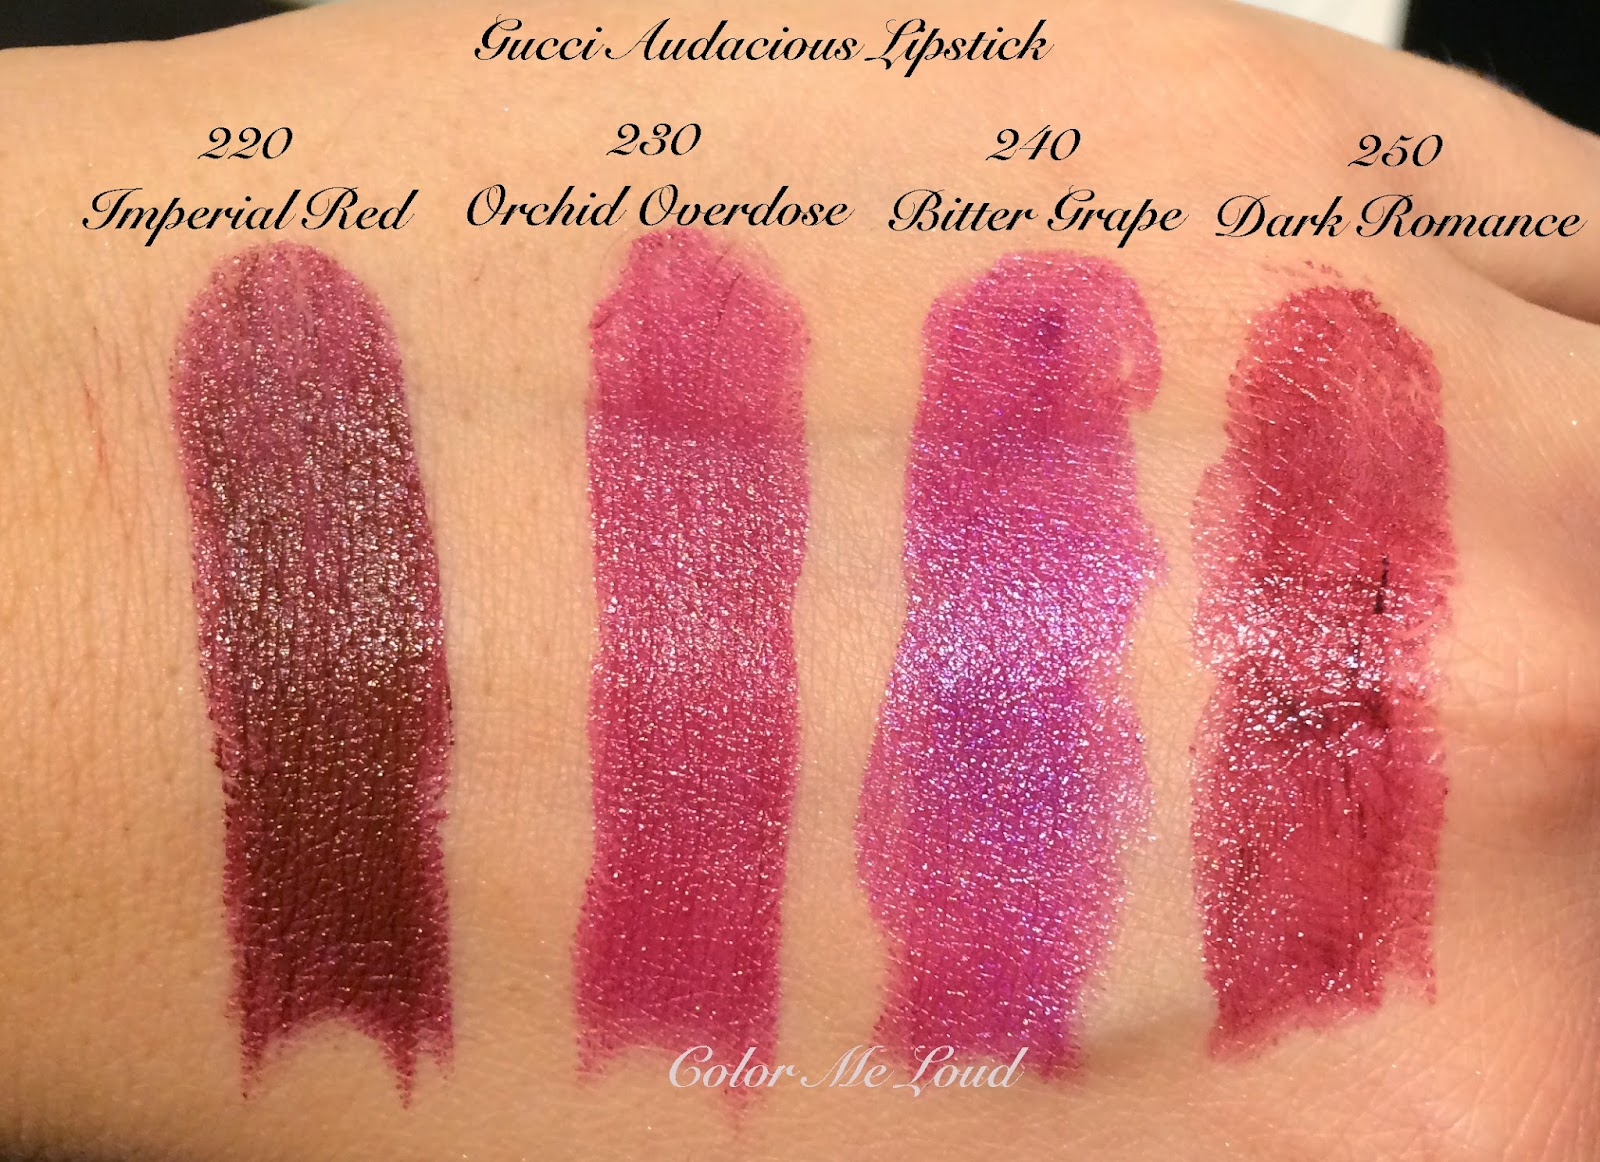 Gucci Audacious Lipsticks, Imperial Red, Orchid Overdose, Bitter Grape and Dark Romance